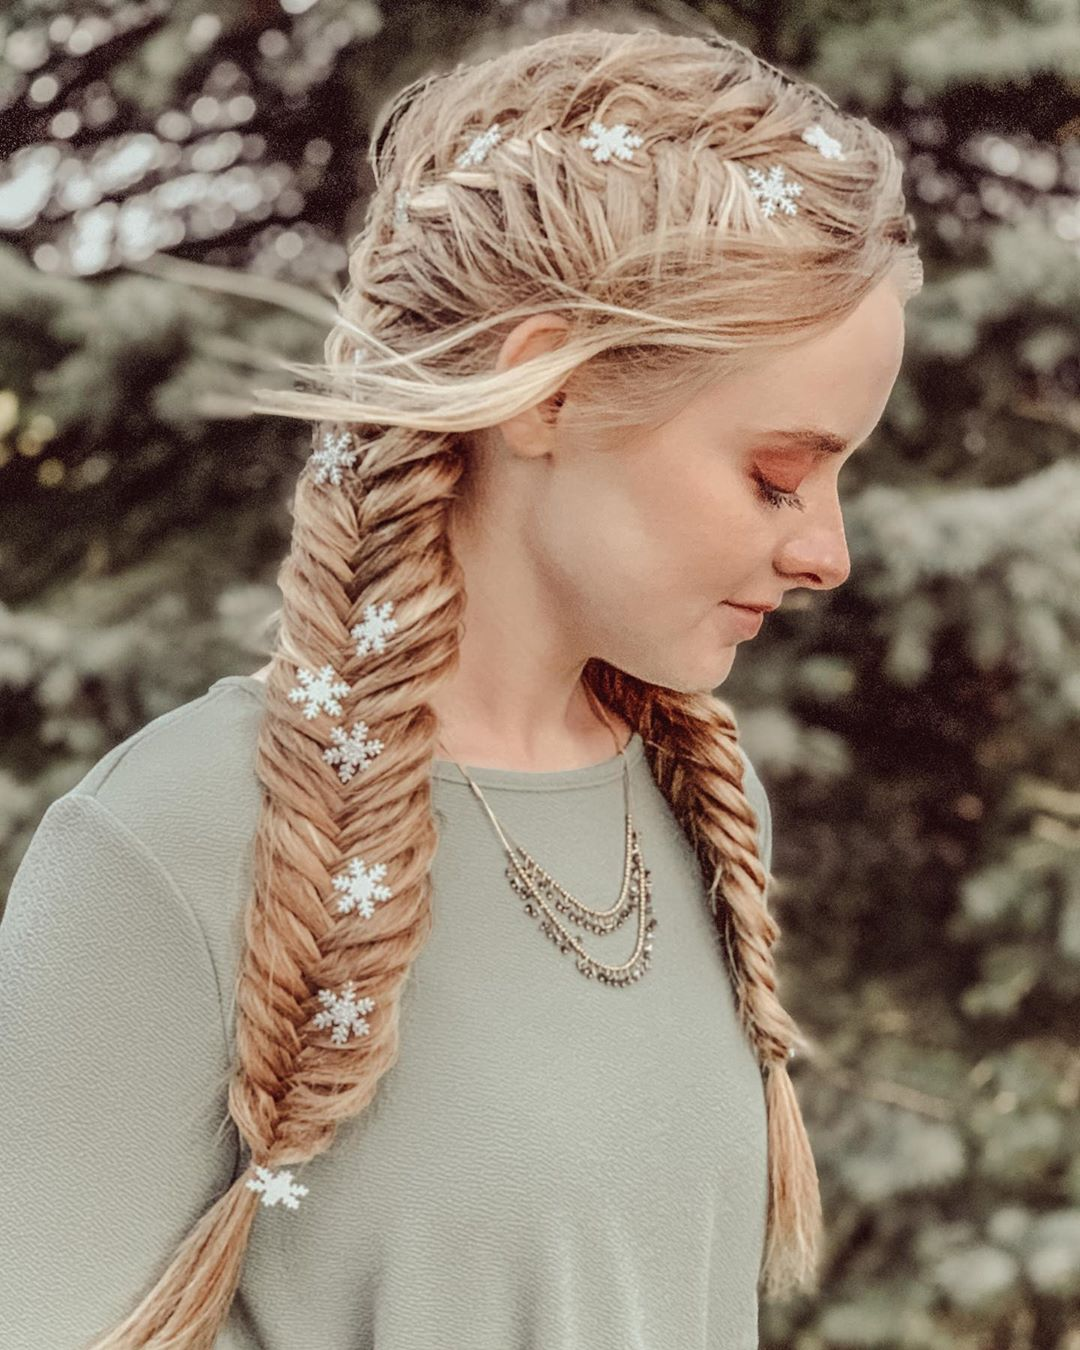 ❄️Snowflake Accented Fishtail Braids❄️ Braids - Hairstyles For Girls